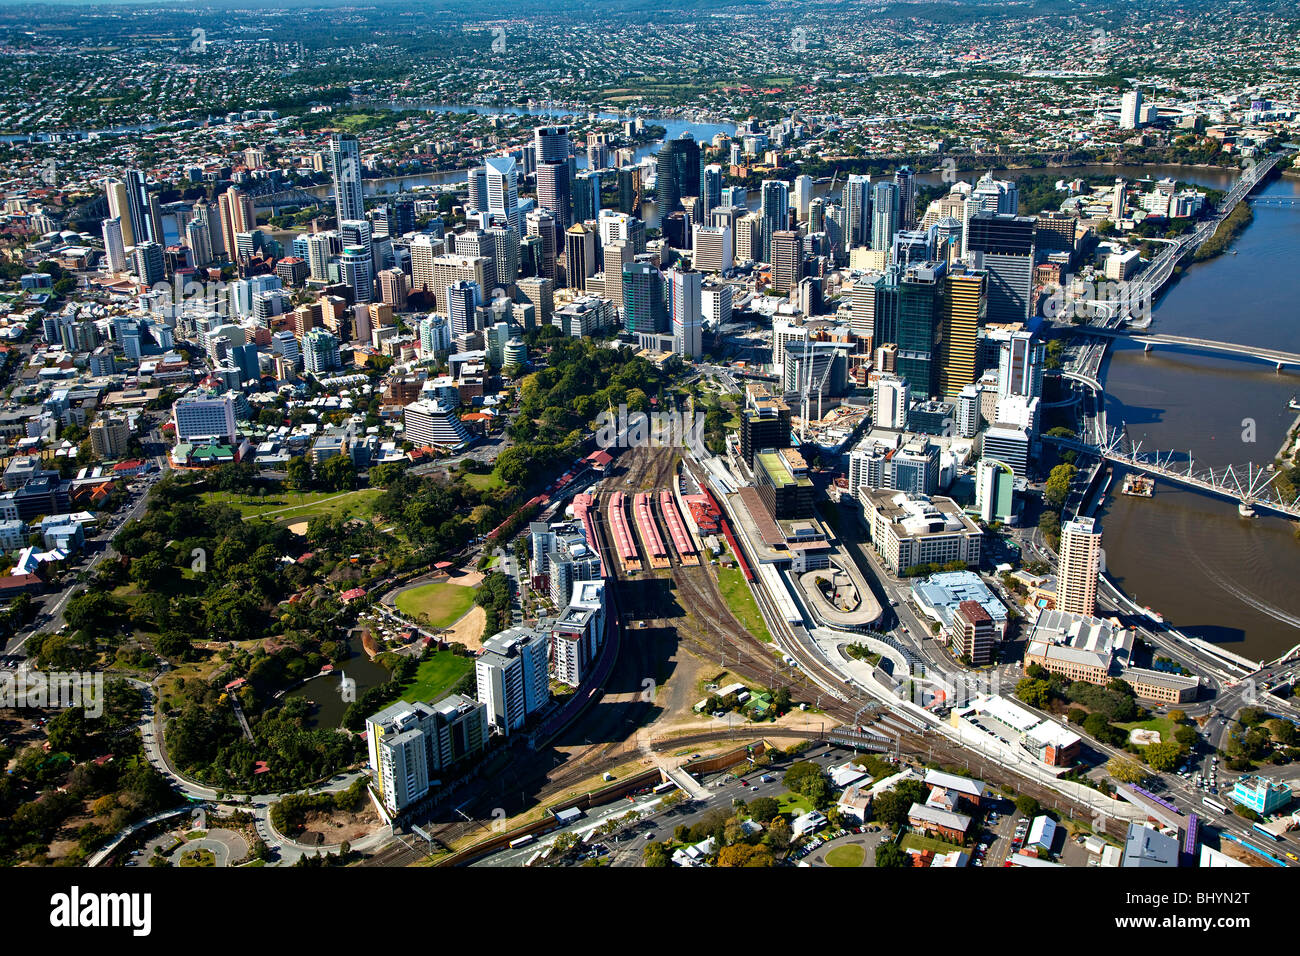 Aerial view of Brisbane central business district & Roma Street station, Australia - Stock Image